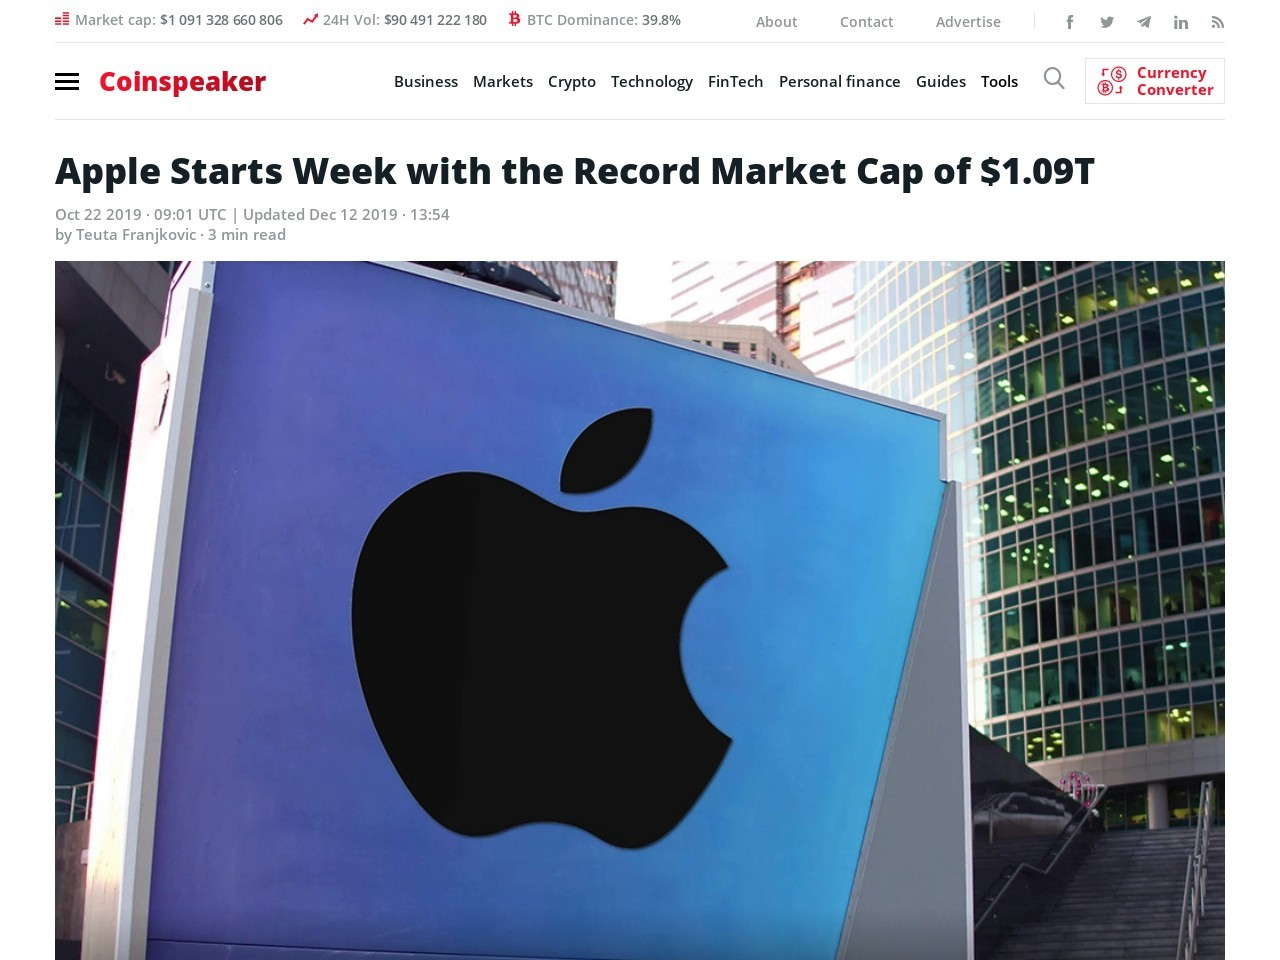 Apple Starts Week with the Record Market Cap of $1.09T